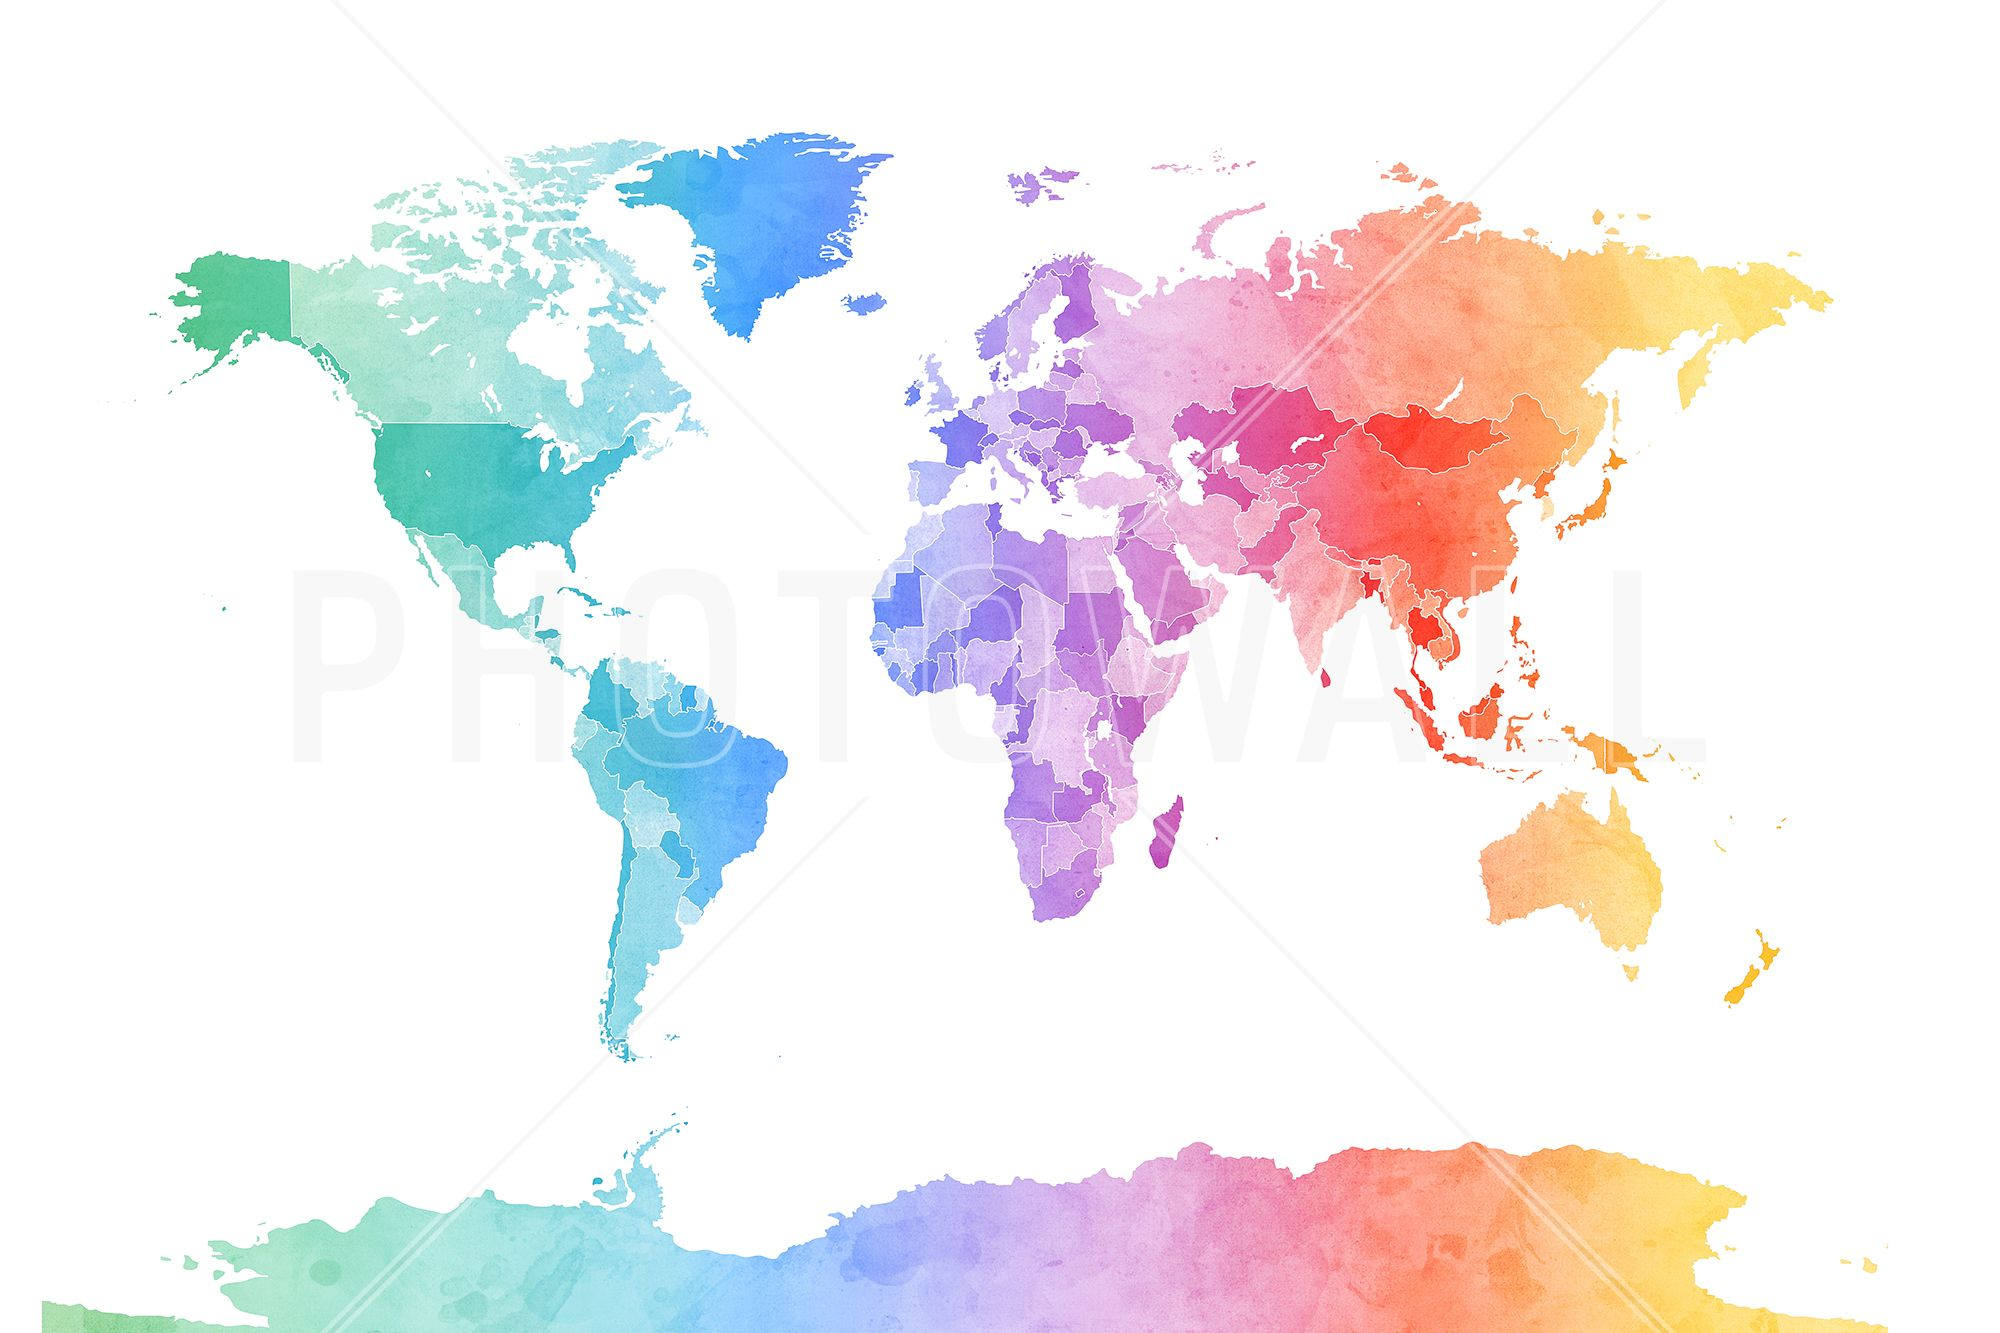 Watercolor Map Of The World Acrylic Print By Michael Tompsett All Prints Are Professionally Printed Packaged And Shipped Within 3